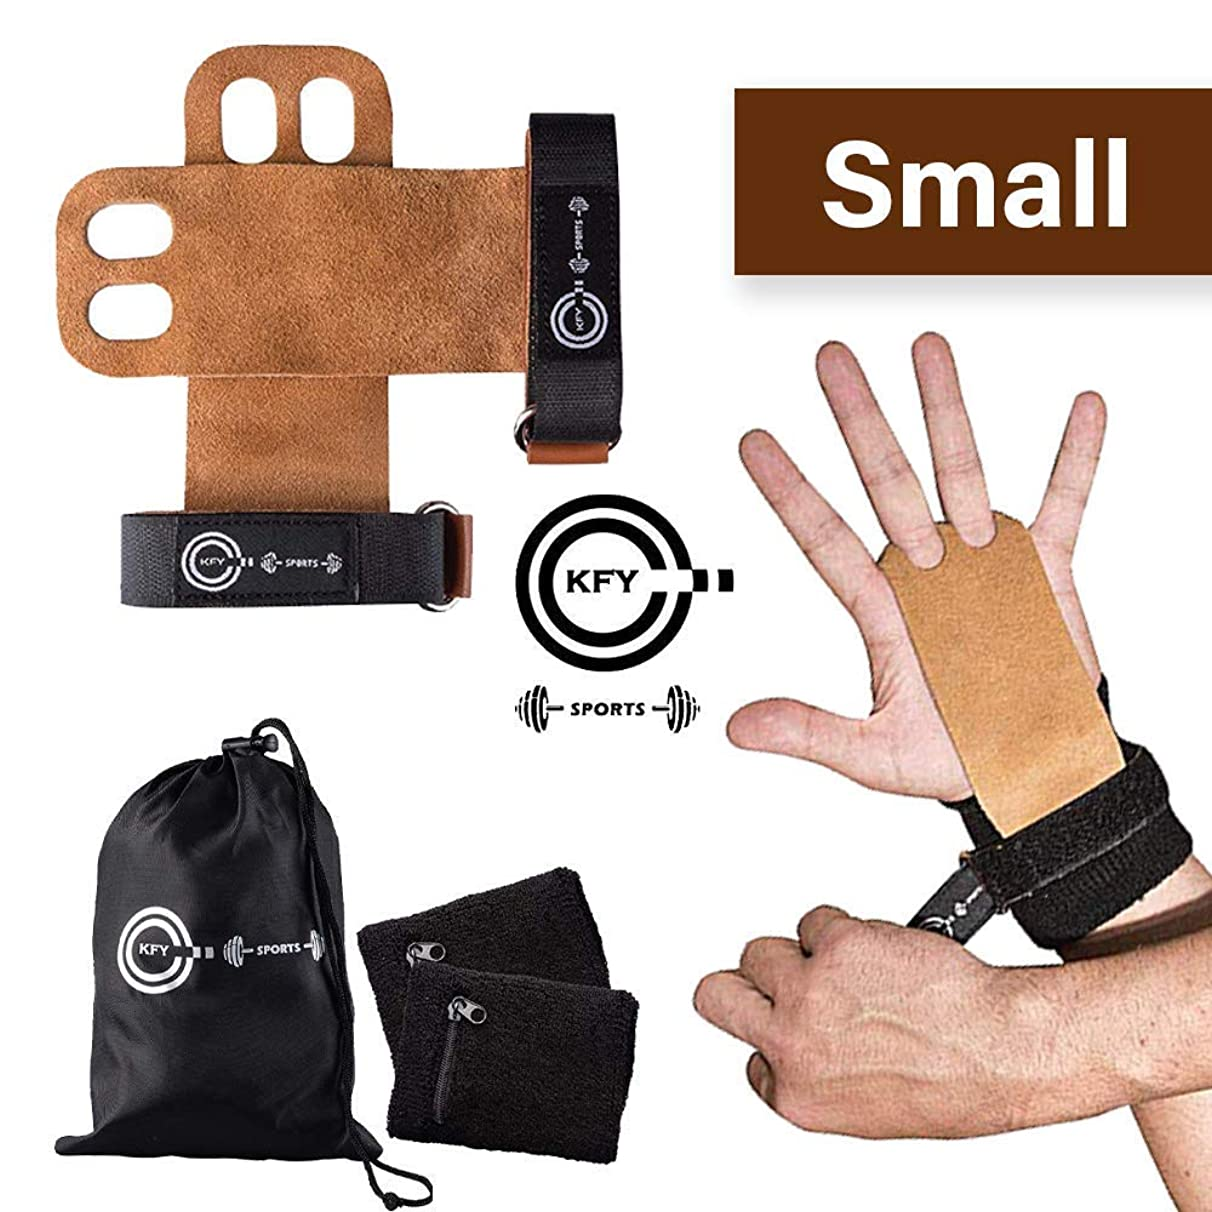 KFY Sports Leather Gymnastics Hand Grips - for Crossfit Workout Training Chin ups Pull-ups WODs Kettlebells - Carrying Bag & Sweatbands with Zipper Pocket - Fitness Lifting Wrist Support (Brown Small)